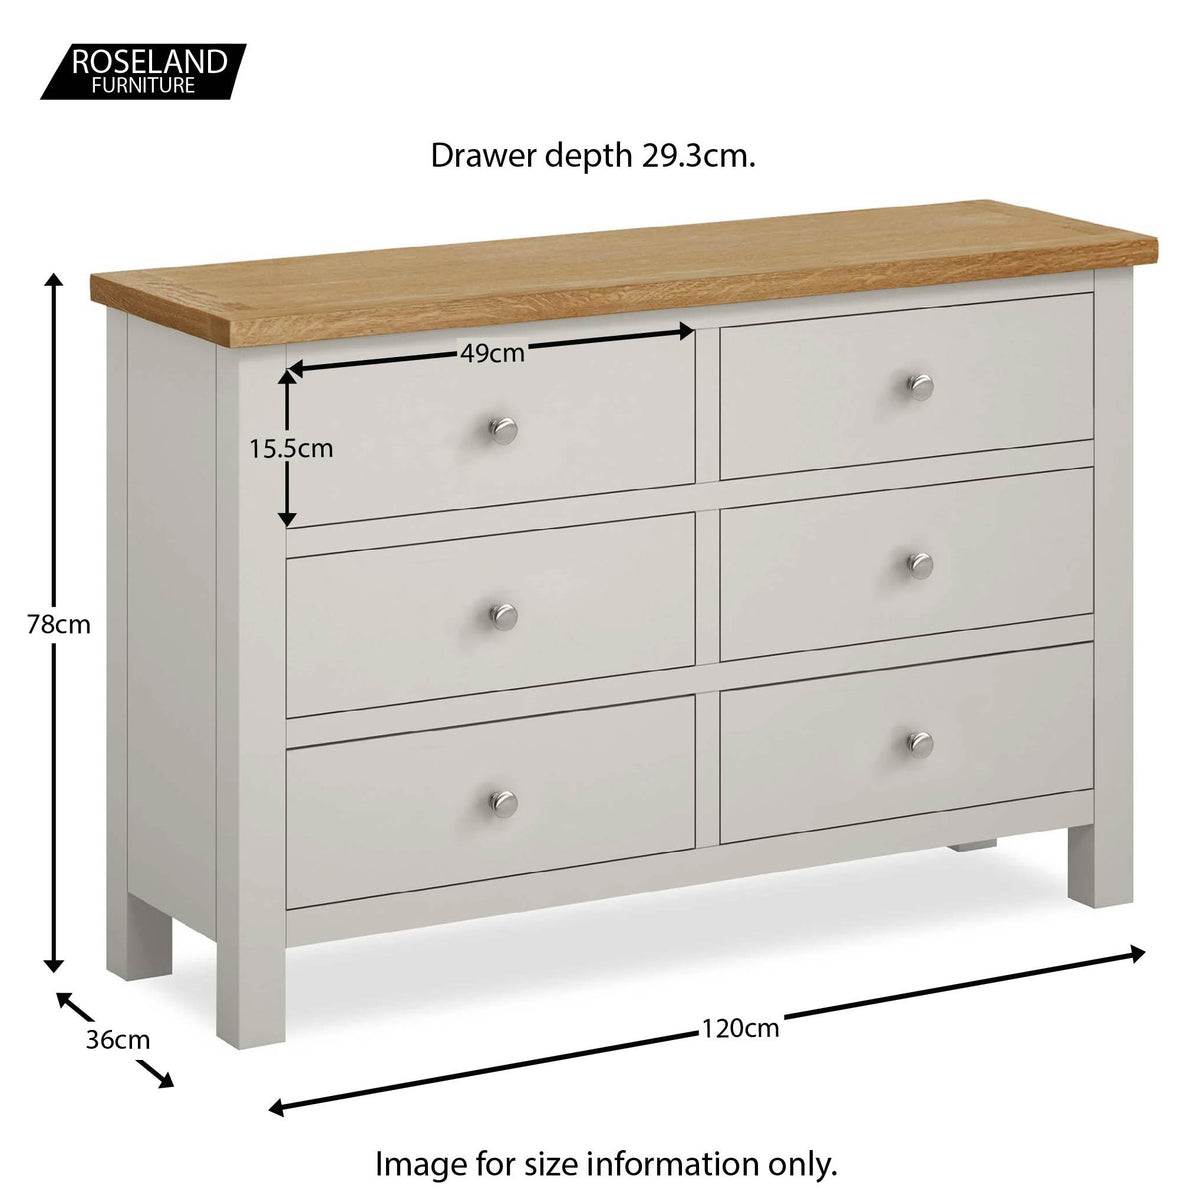 Farrow Grey 6 Drawer Chest of Drawers - Size Guide